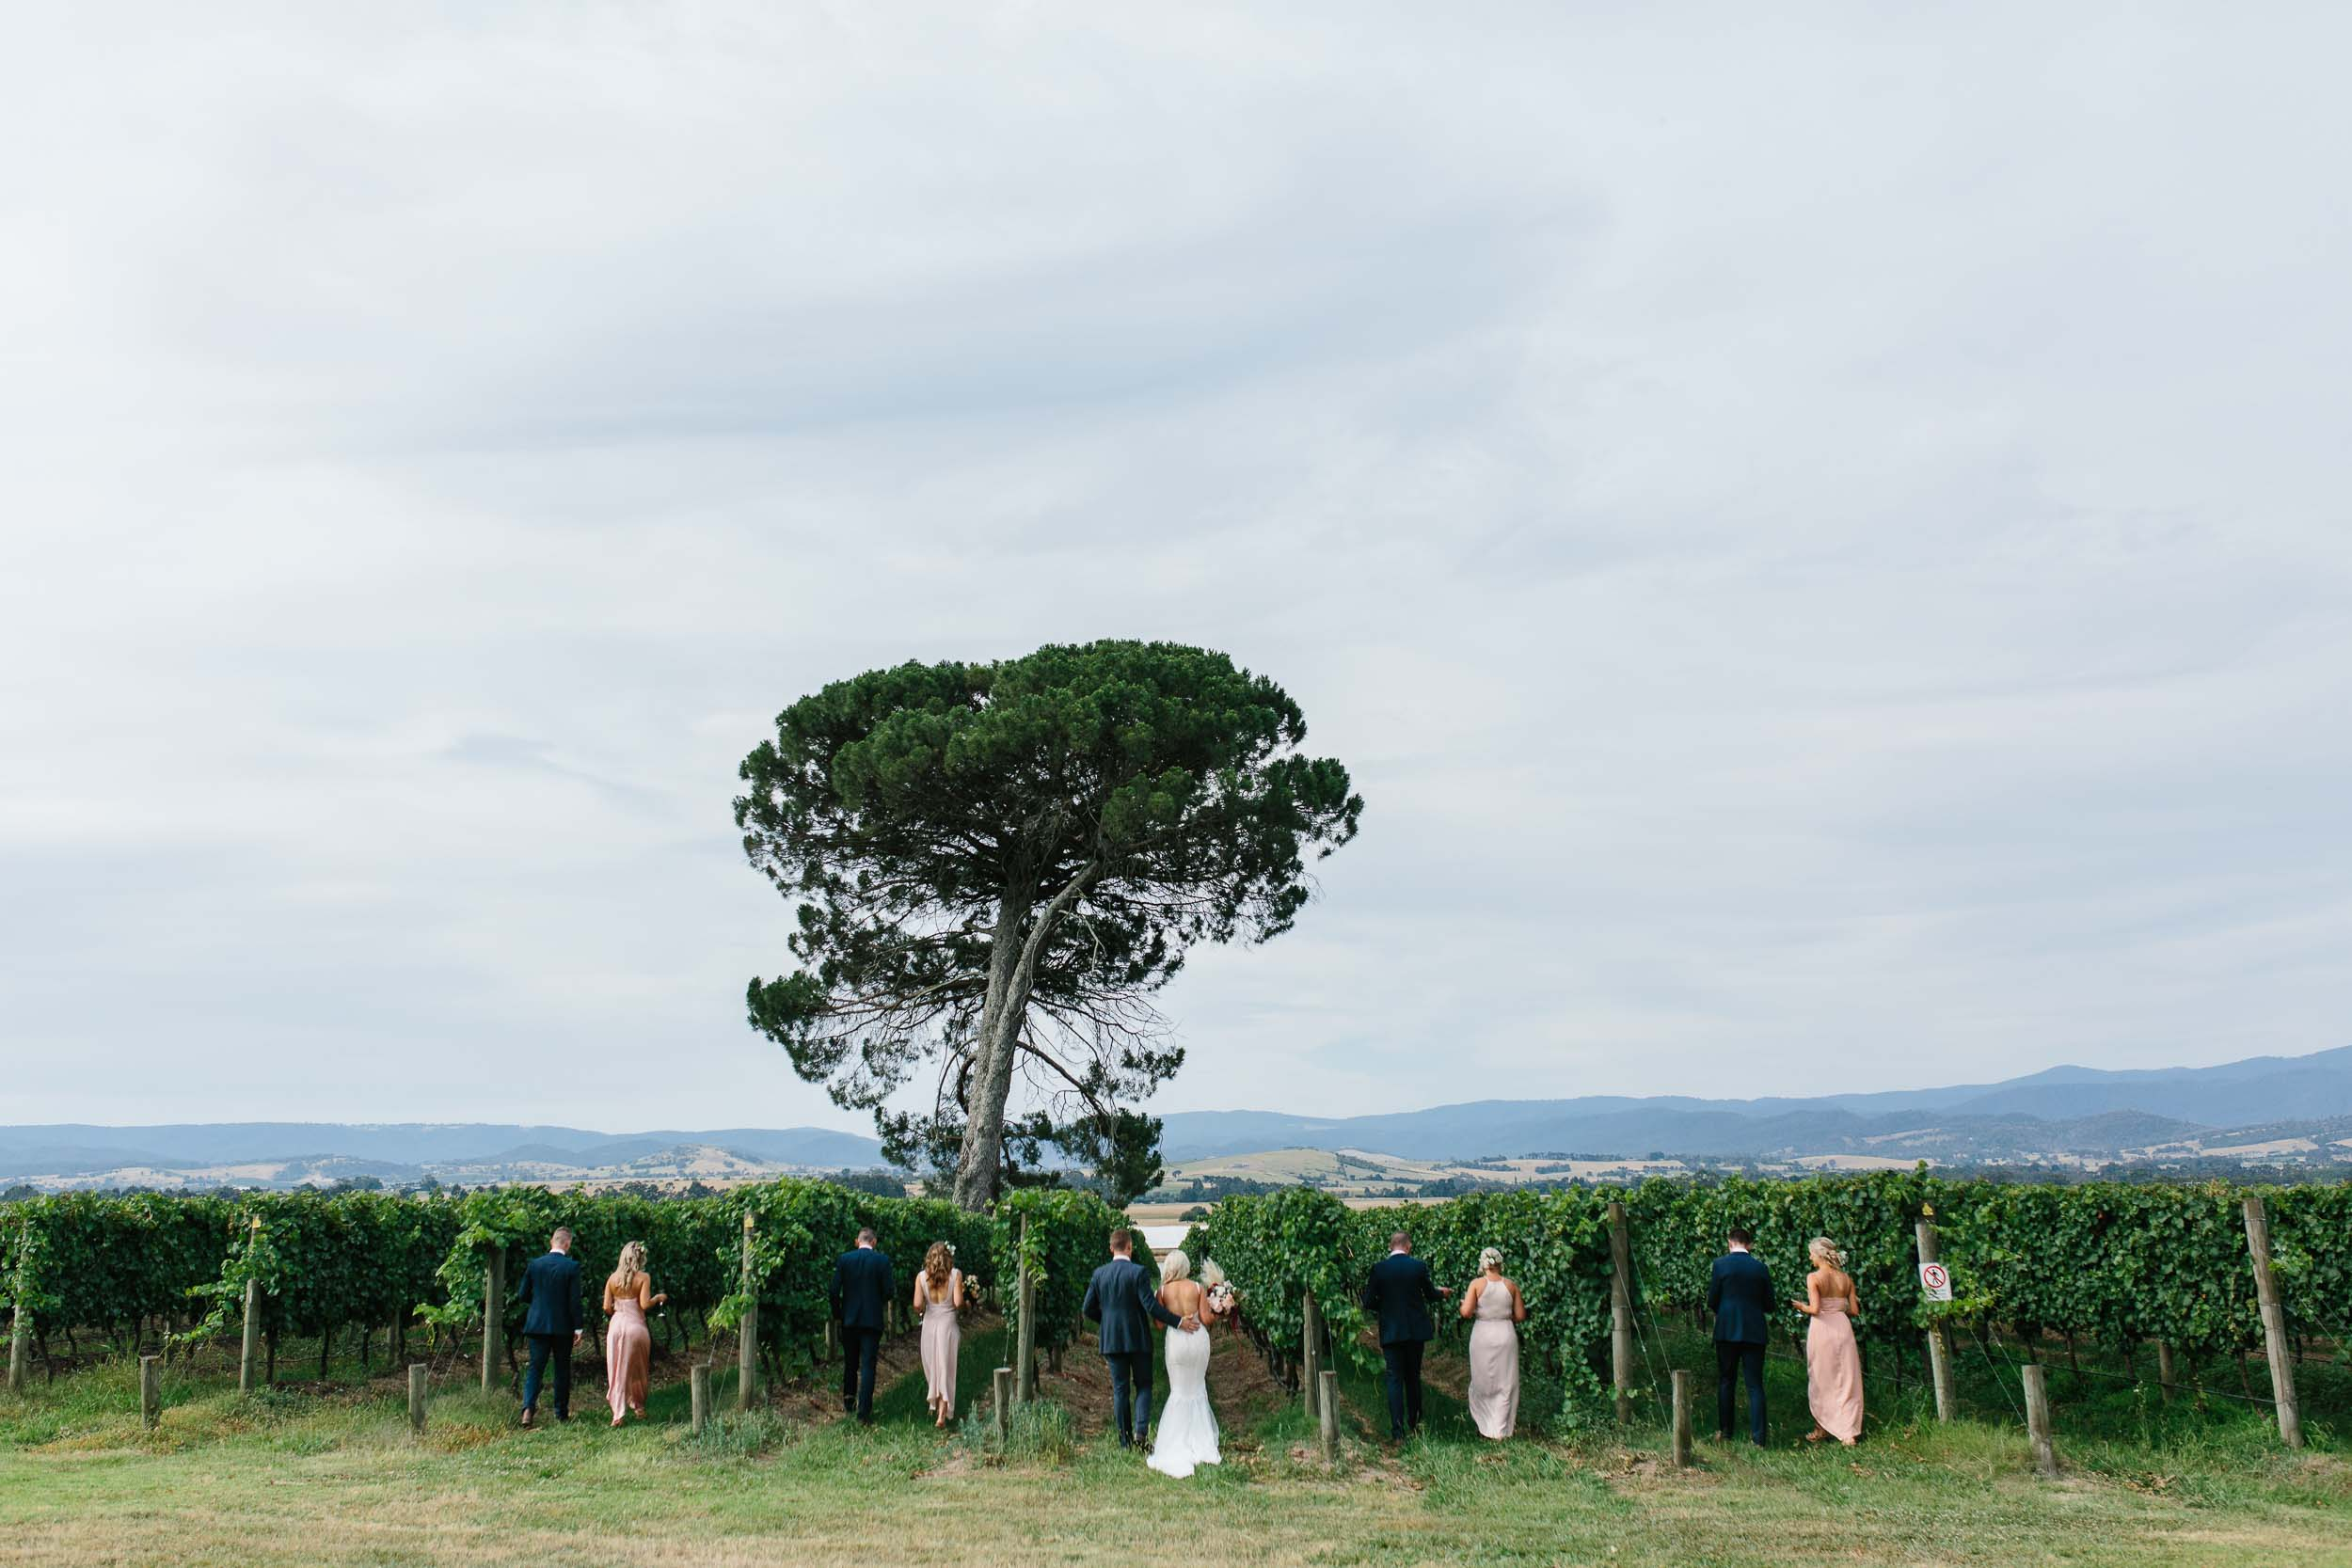 Kas-Richards-Stones-of-the-Yarra-Valley-Wedding-Pallas-Couture-Gown-441.jpg